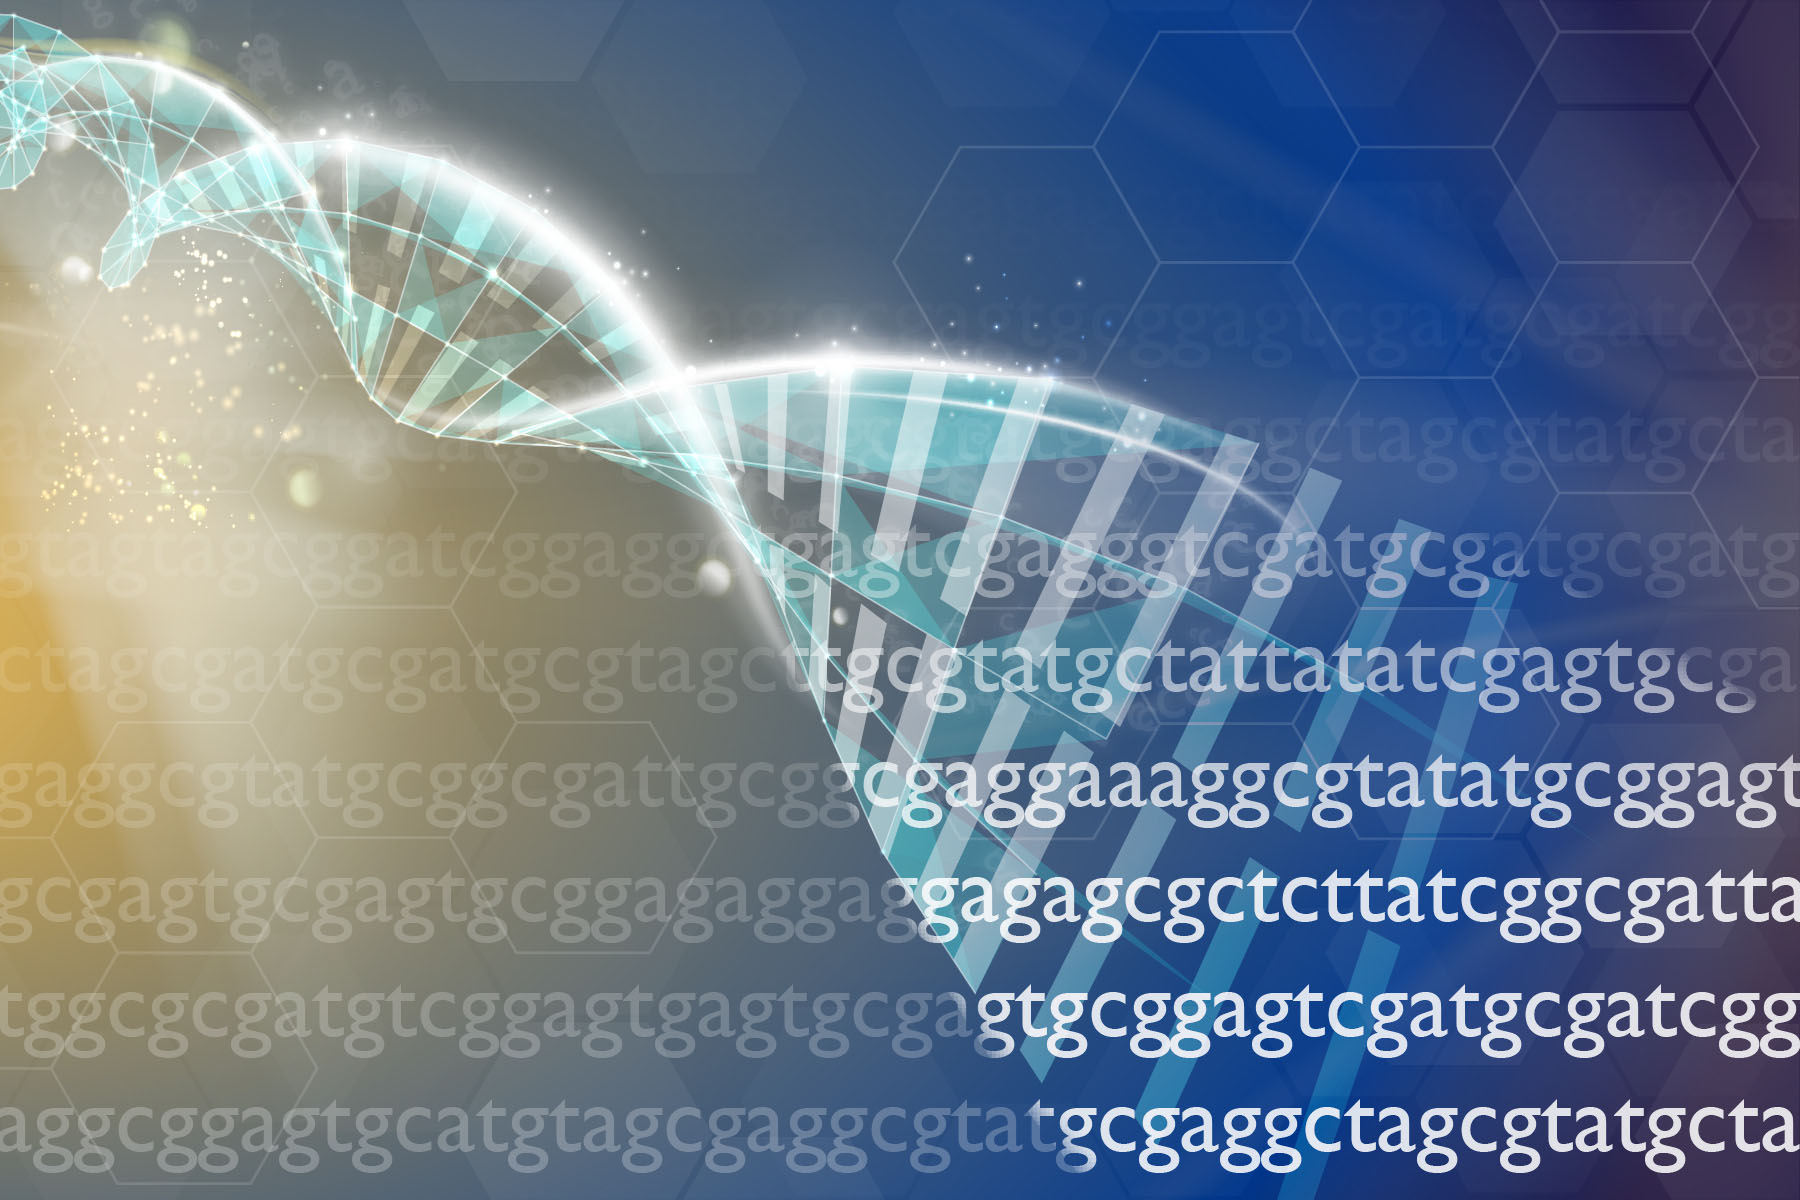 GFBR 2019 on 'genome editing for human benefit: ethics, engagement and governance'